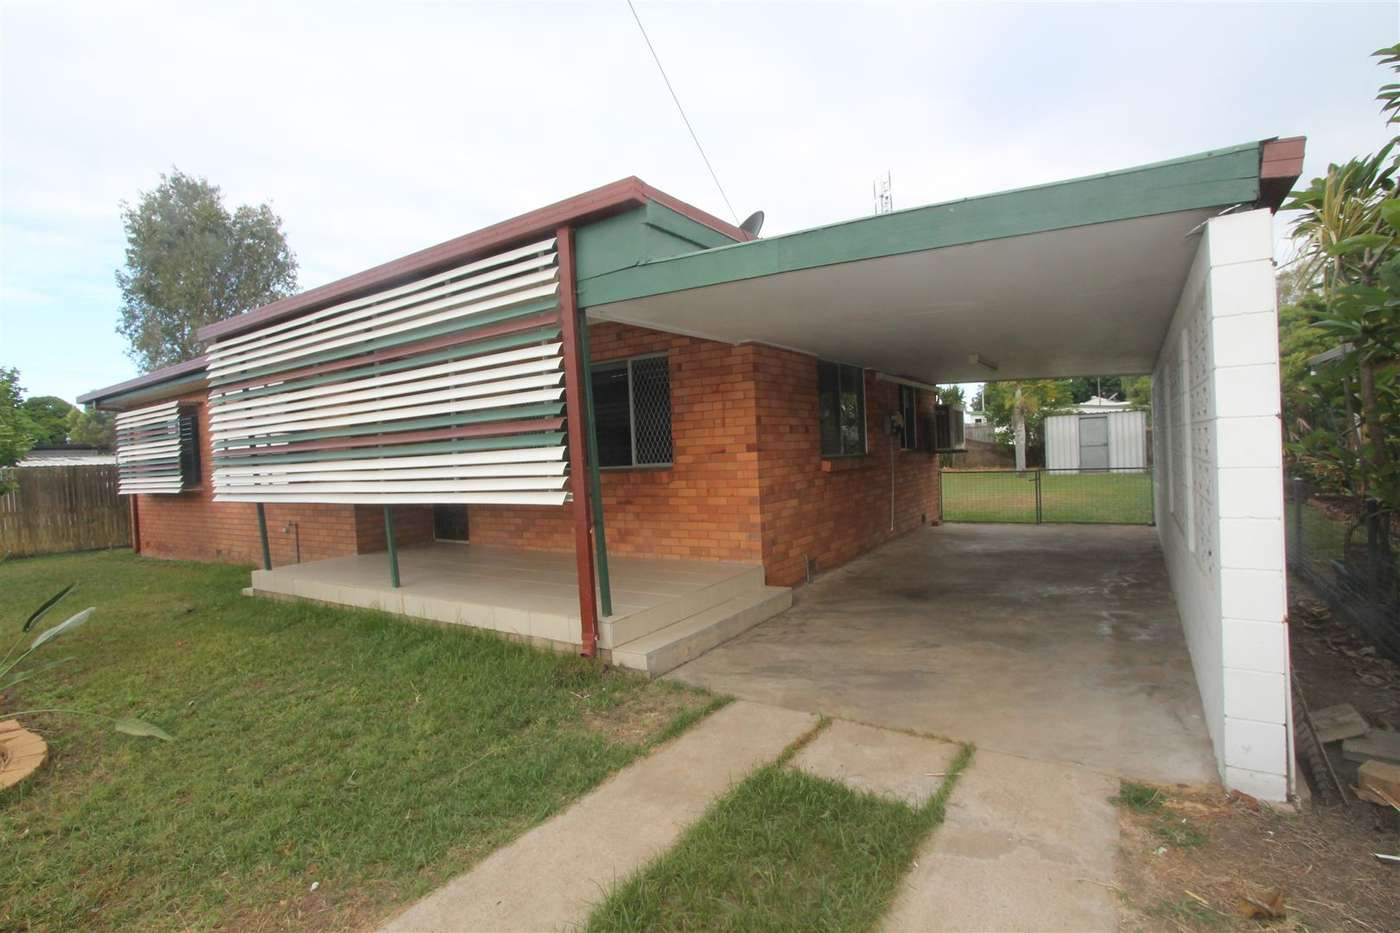 Main view of Homely house listing, 12 Cox Street, Ayr, QLD 4807